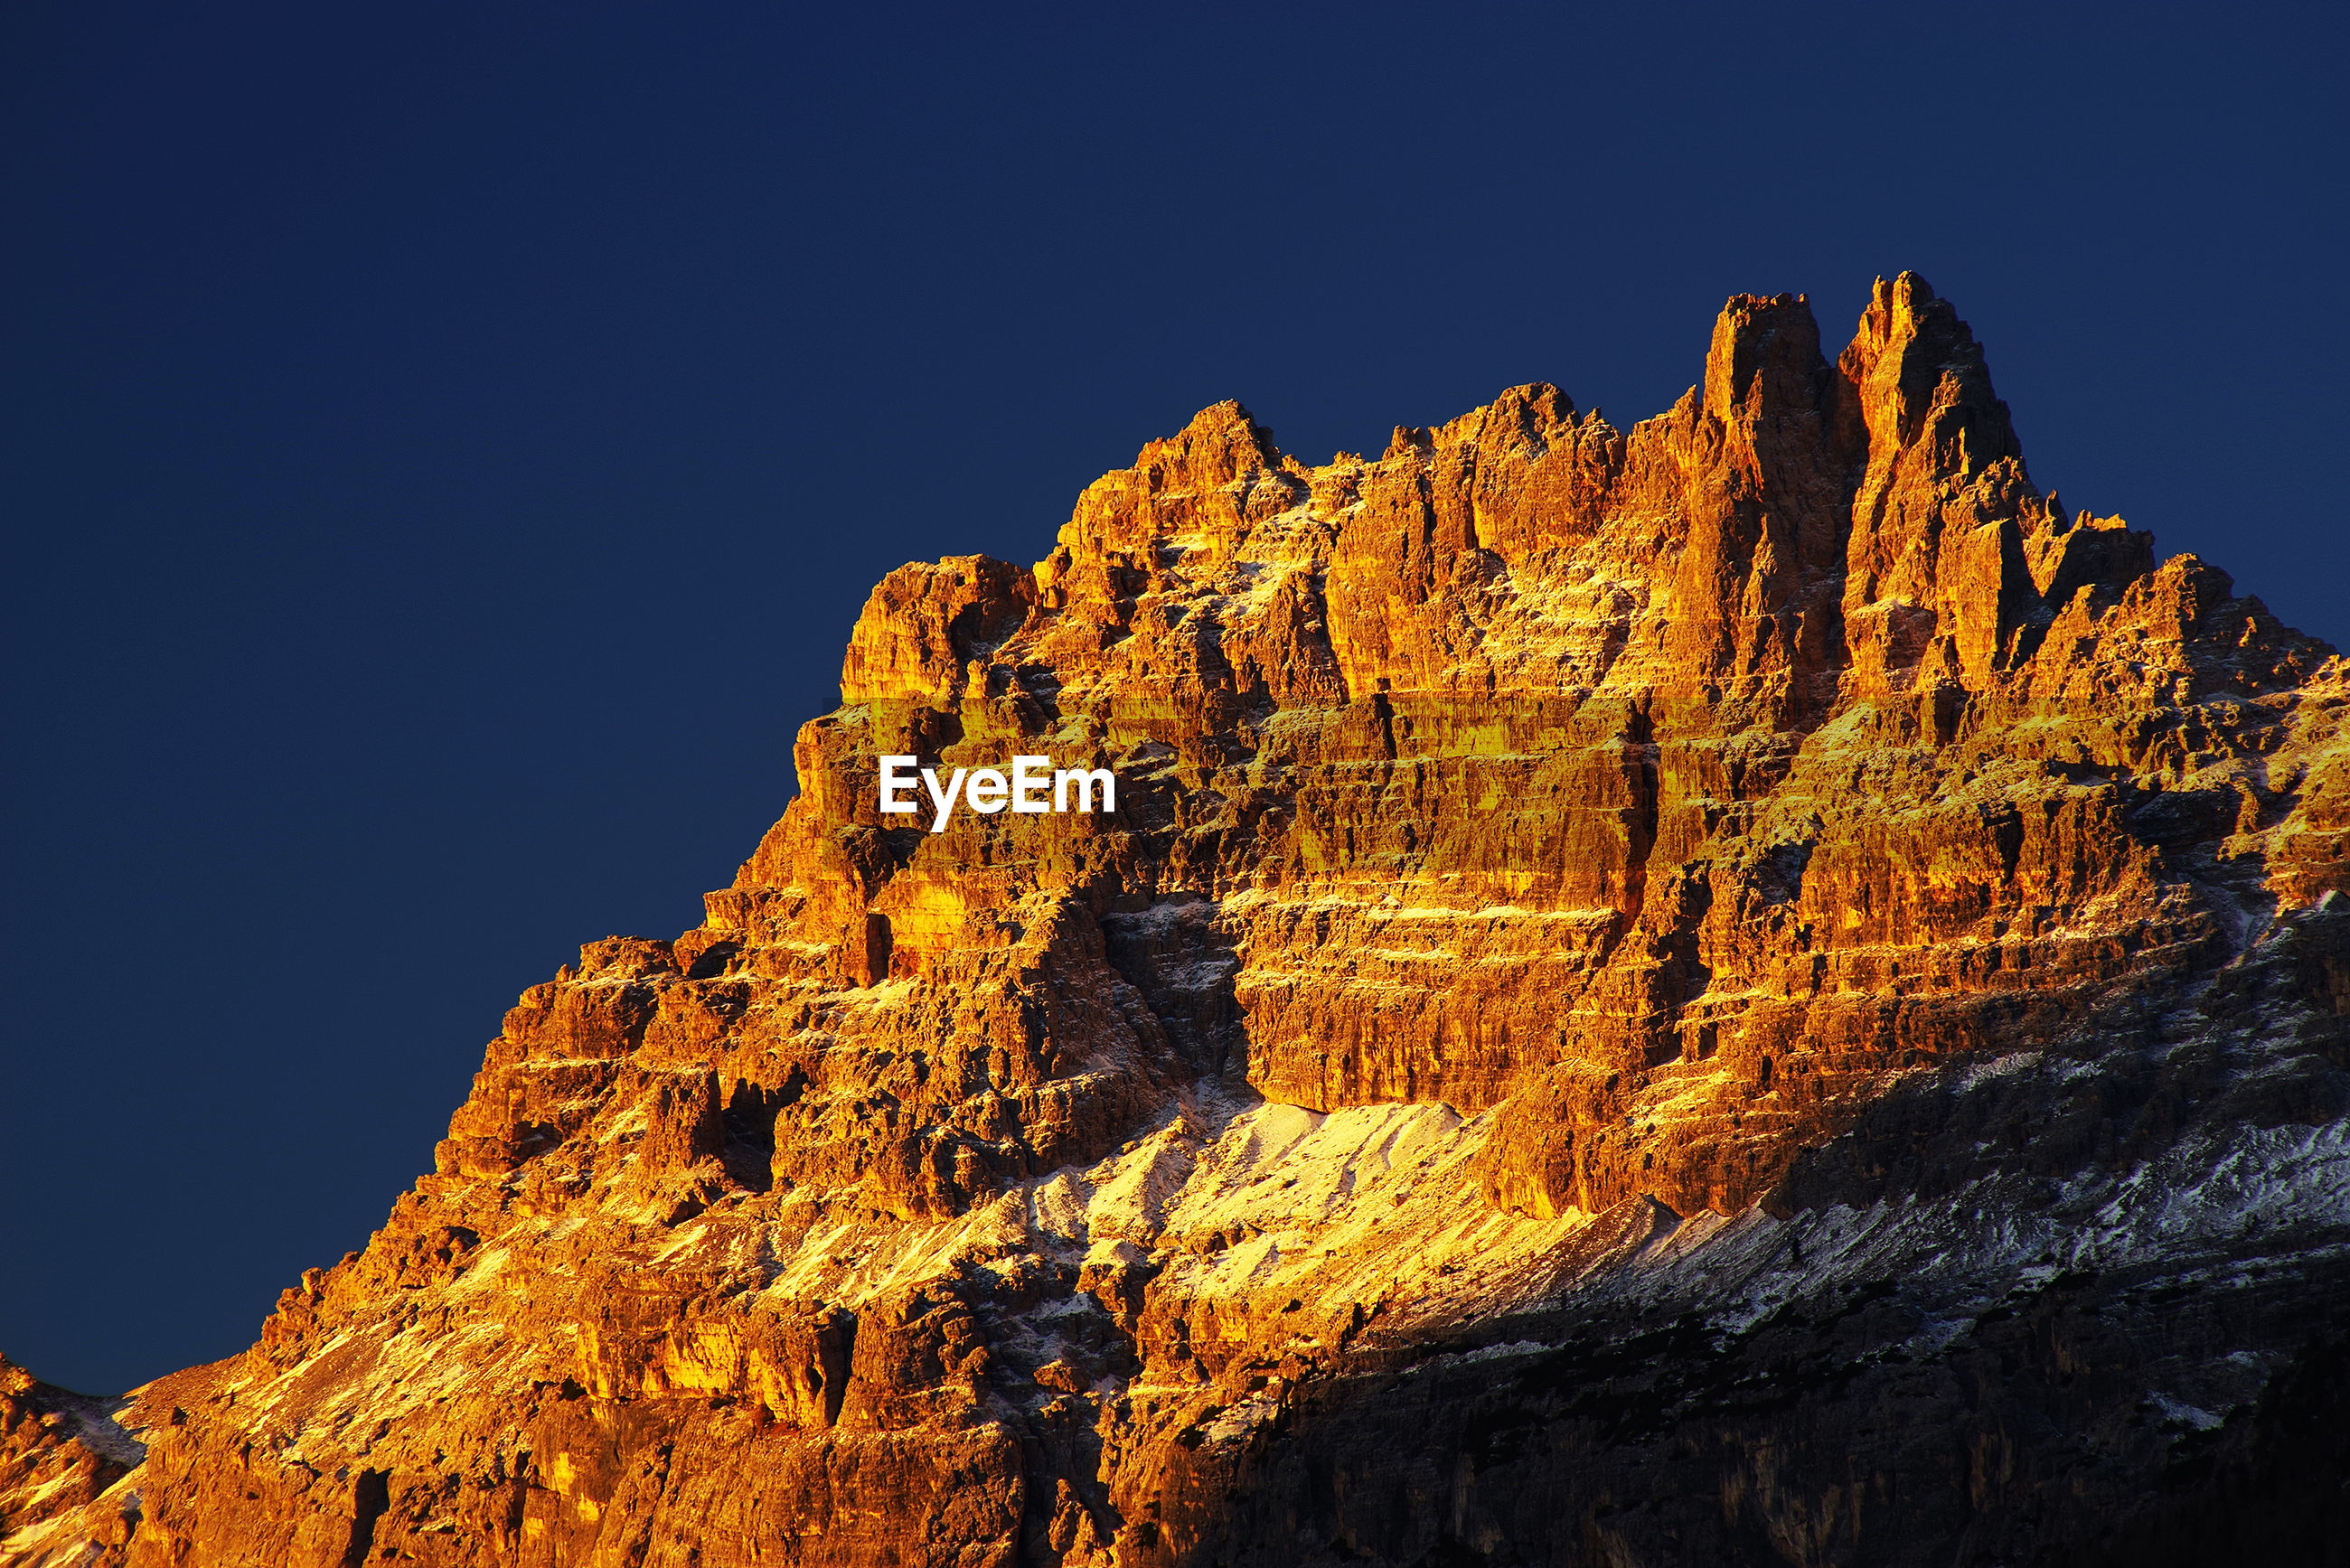 LOW ANGLE VIEW OF ROCKY MOUNTAINS AGAINST CLEAR BLUE SKY